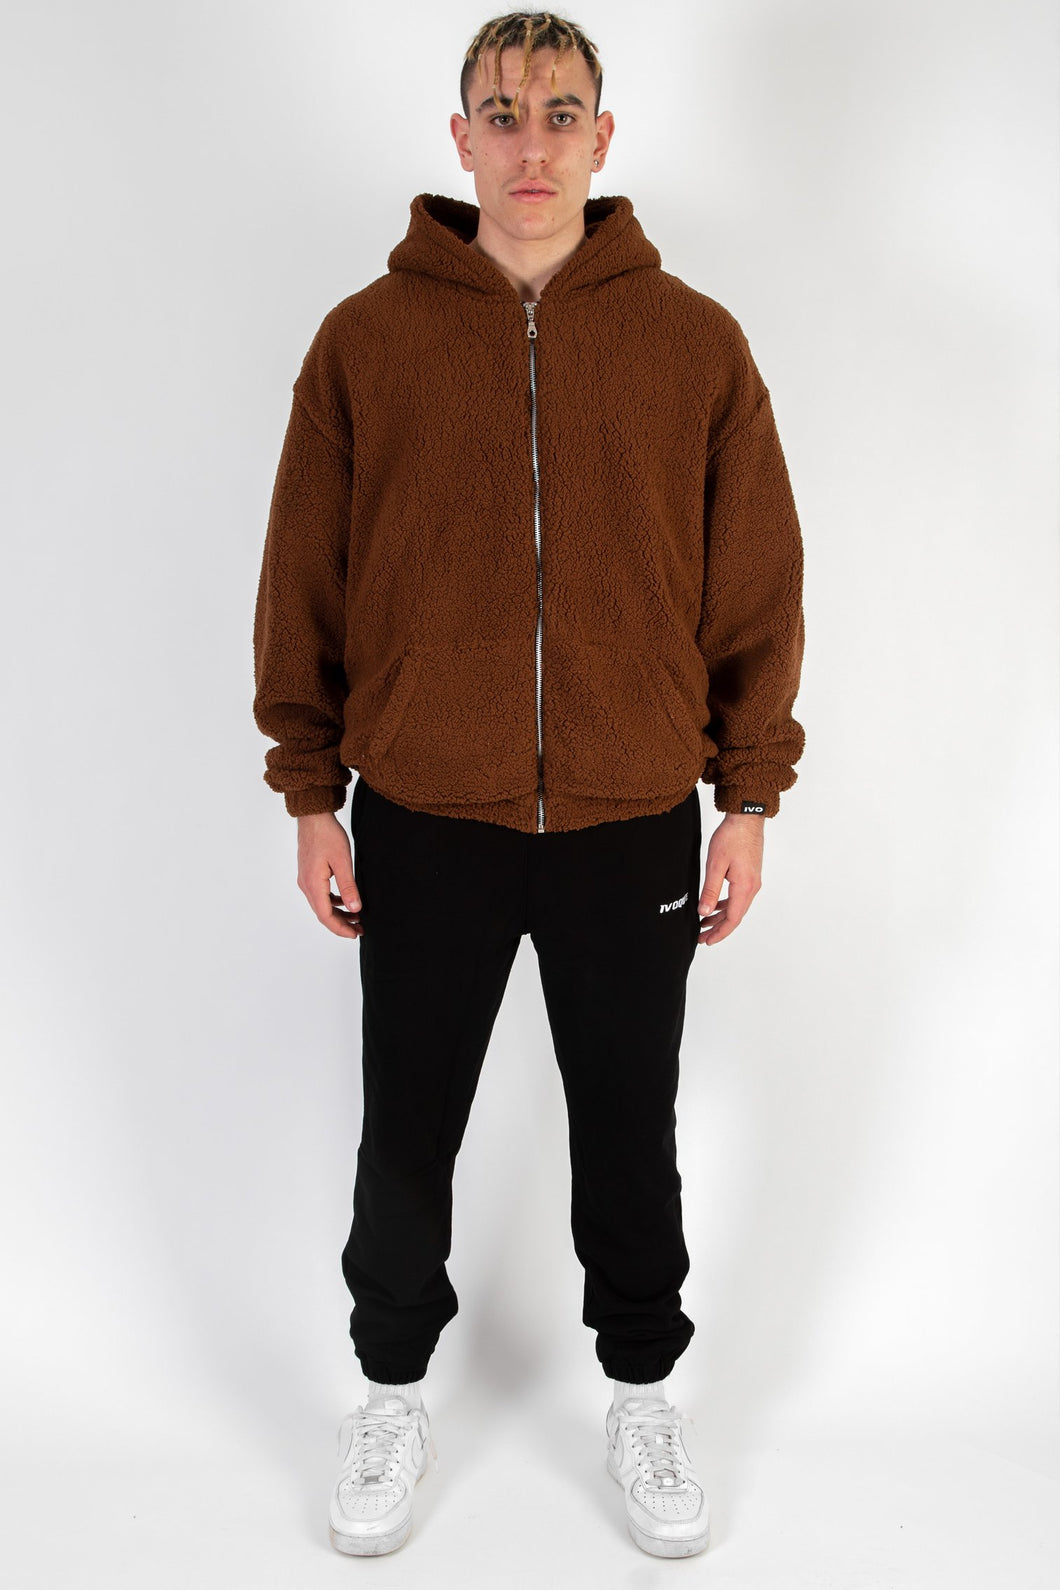 TEDDY JACKET BROWN COLLEGE